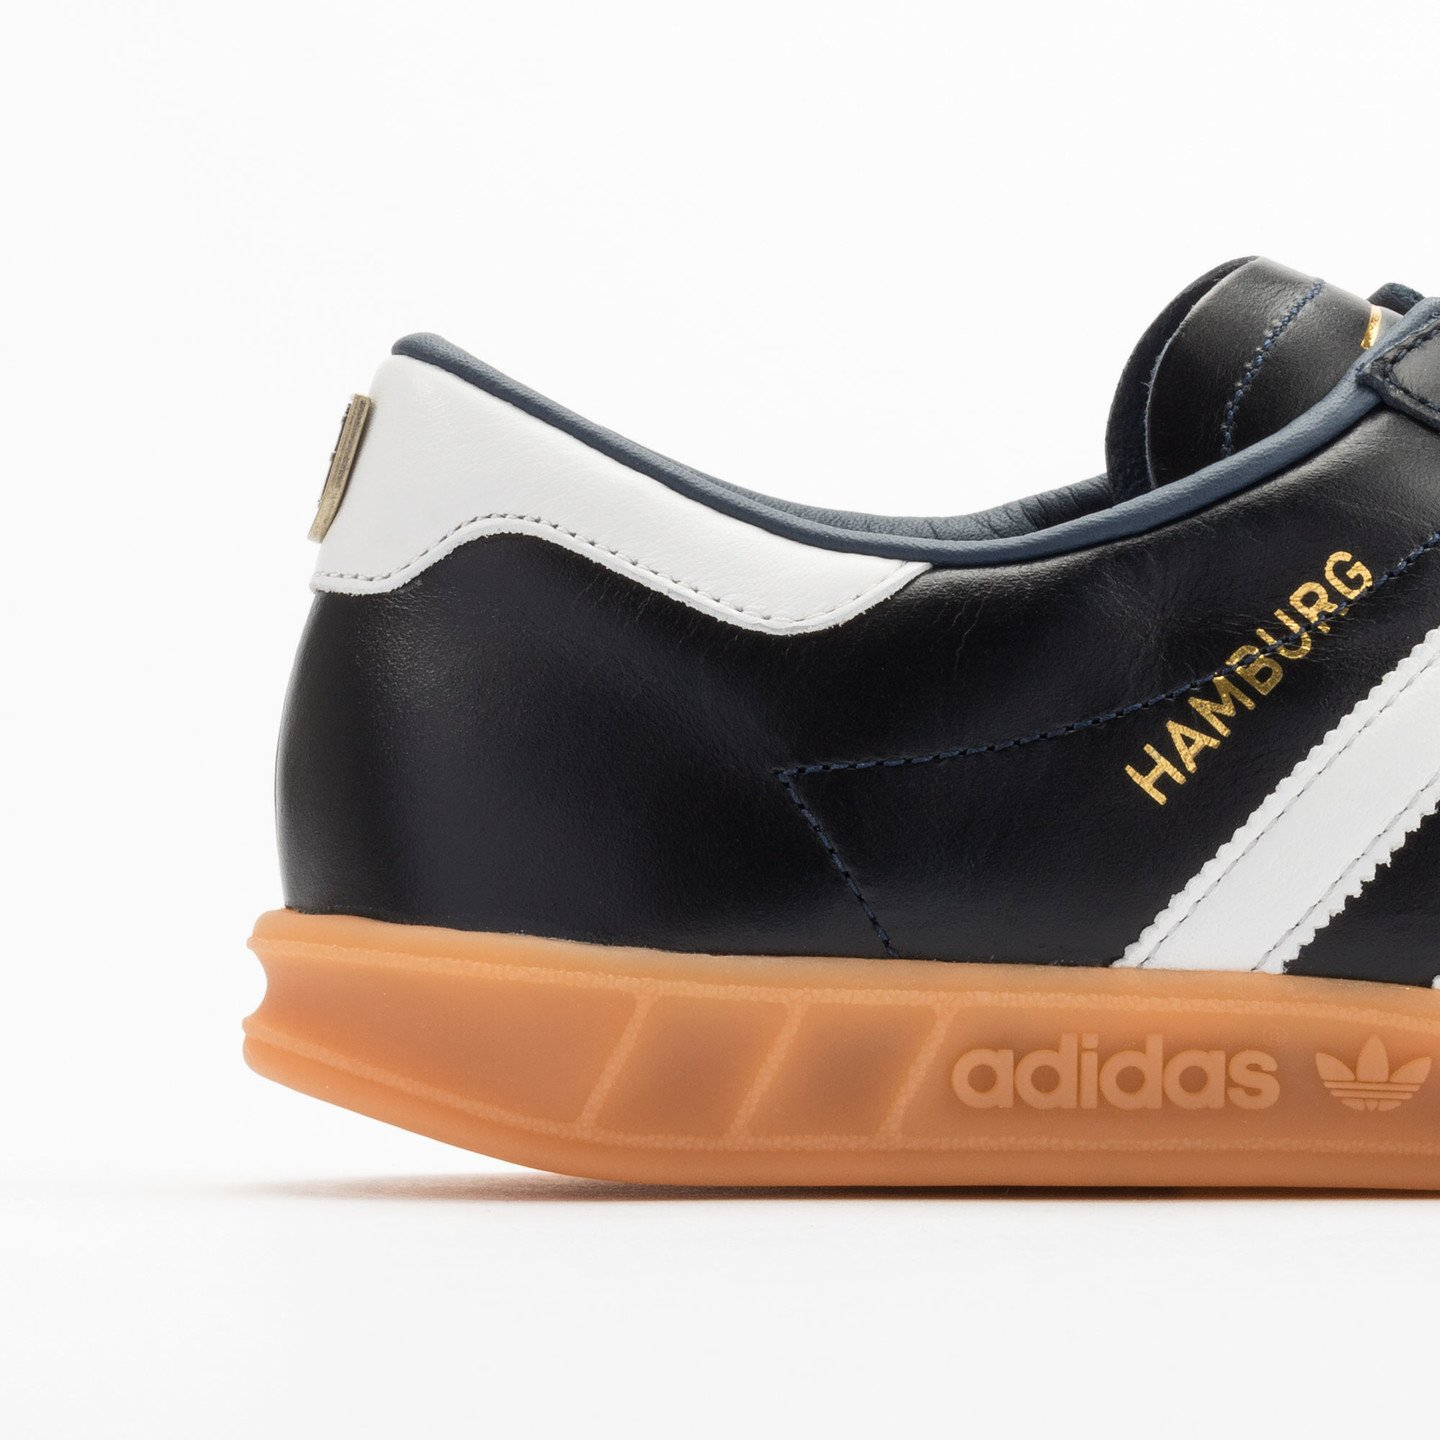 Adidas Hamburg - Made in Germany Navy / White / Gold / Gum S31602